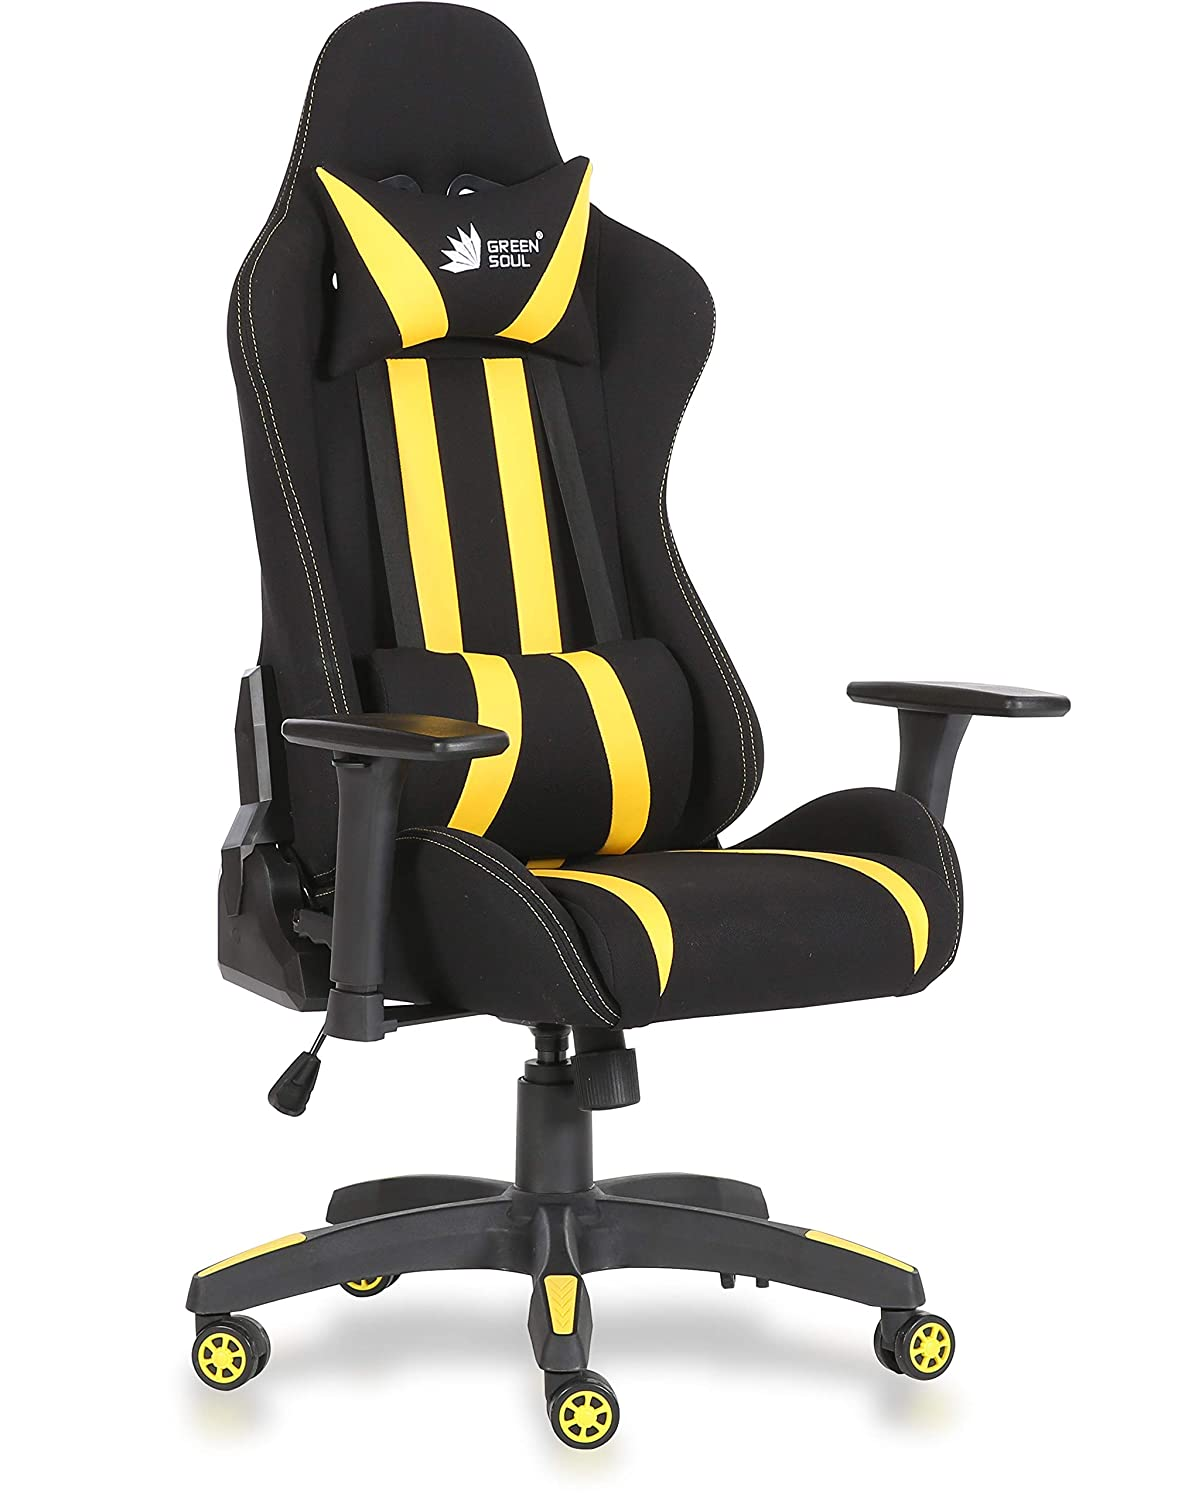 BEST [2 in 1] OFFICE & GAMING CHAIR, GREEN SOUL BEAST SERIES GS600 GAMING CHAIR REVIEW US 2021